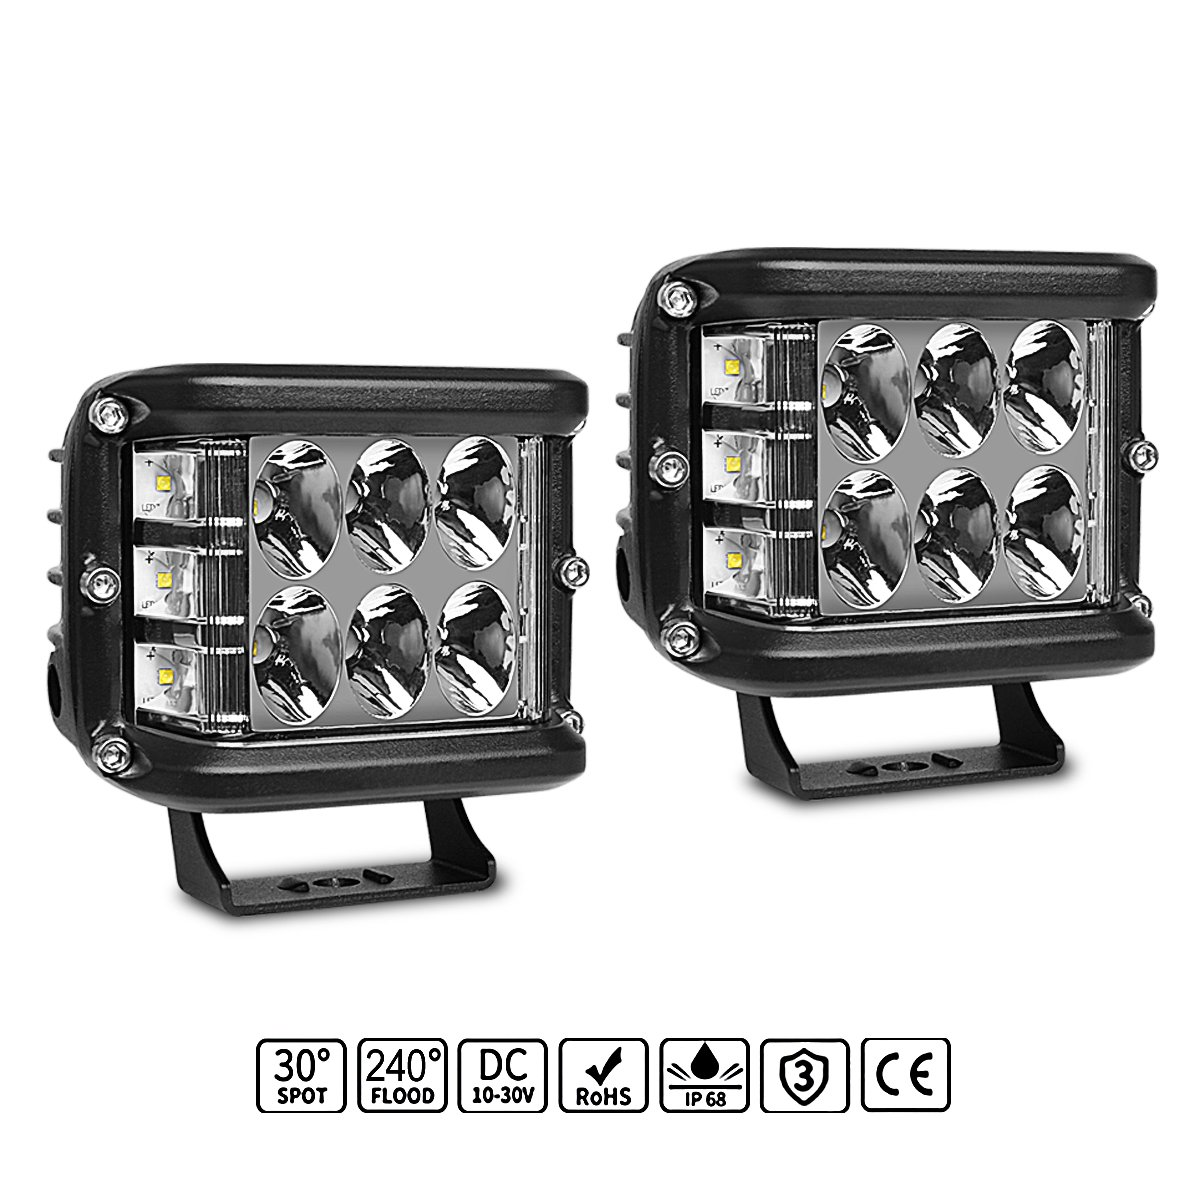 Led Light Pods Rigidhorse 2pcs 4 Inch Bar Details About Spot Flood Work Driving Wiring Button On Off Beam Combo Cube Lights Road For Trucks Atv